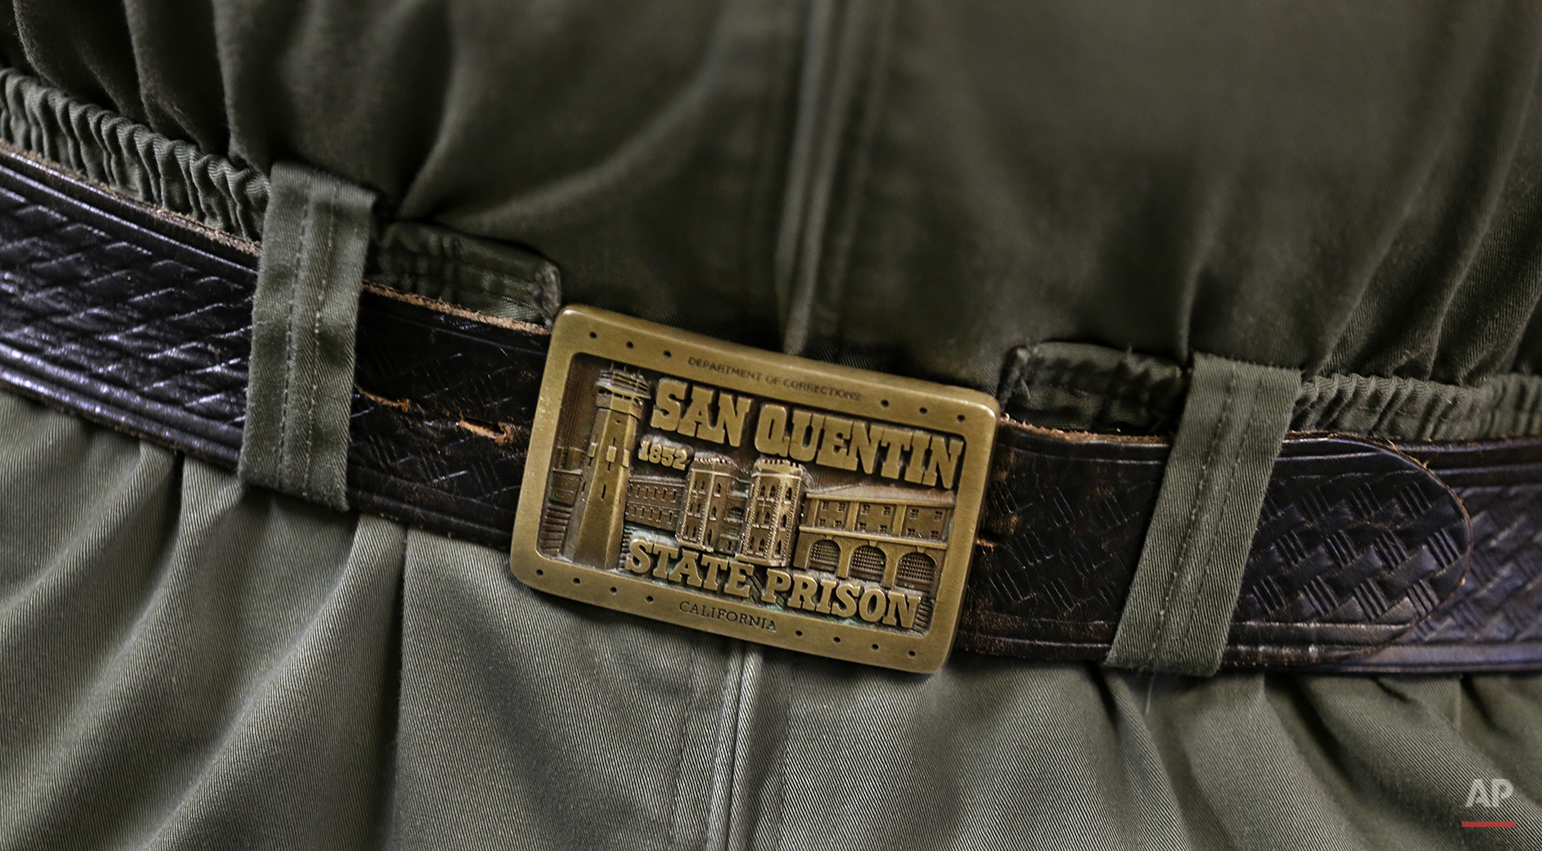 In this photo taken on Tuesday, Dec. 29, 2015, a belt buckle warn by a San Quentin State Prison officer is seen at in San Quentin, Calif. With California's lethal injection protocol in limbo, the nearly 750 inmates at San Quentin State Prison, the nation's most populous death row, are more likely to die from natural causes or suicide than execution. (AP Photo/Ben Margot)